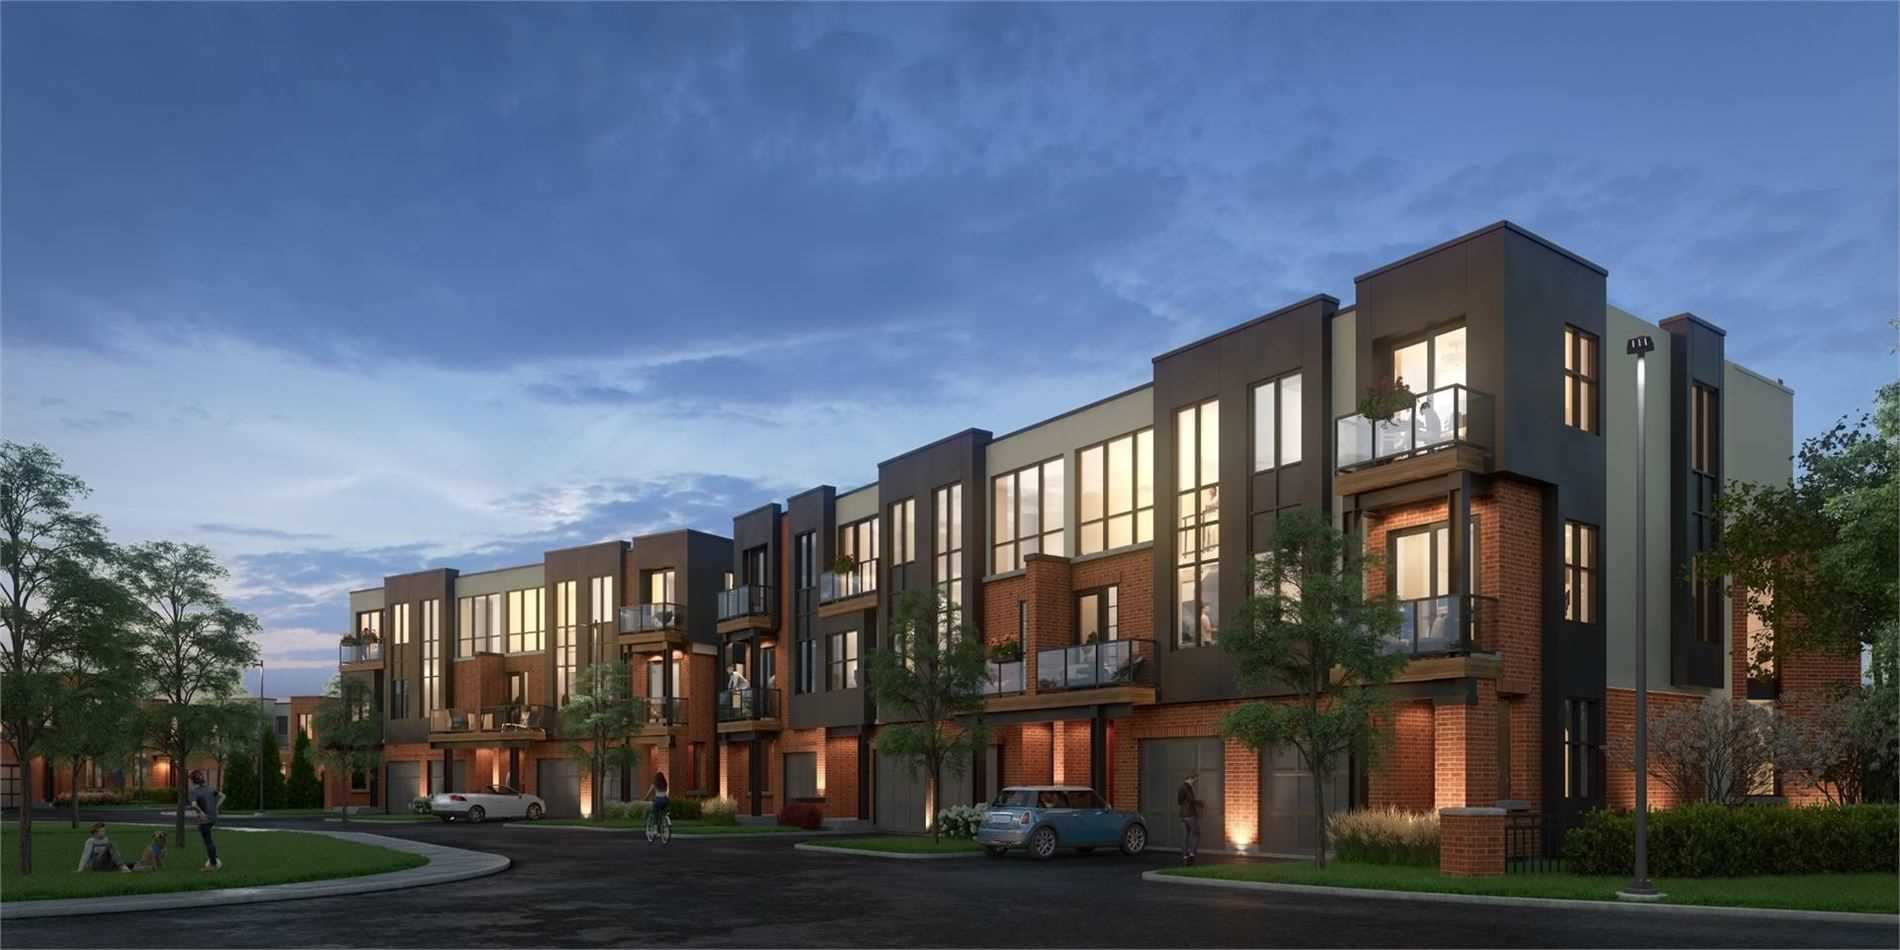 Assignment Sale! Amazing Two Bedroom And Three Washroom Corner Unit Townhouse By Aiva Properties. Open Concept Living On Main Floor With Elegant Finishes And Features. Two Full Baths On 2nd Level. Total Liveable Area Of 1331 Square Feet. Closing In January 2022. In Short Walking Distance To Groceries Stores, Schools And Parks. Minutes Away From Qew, Highway 406 And Niagara Falls.